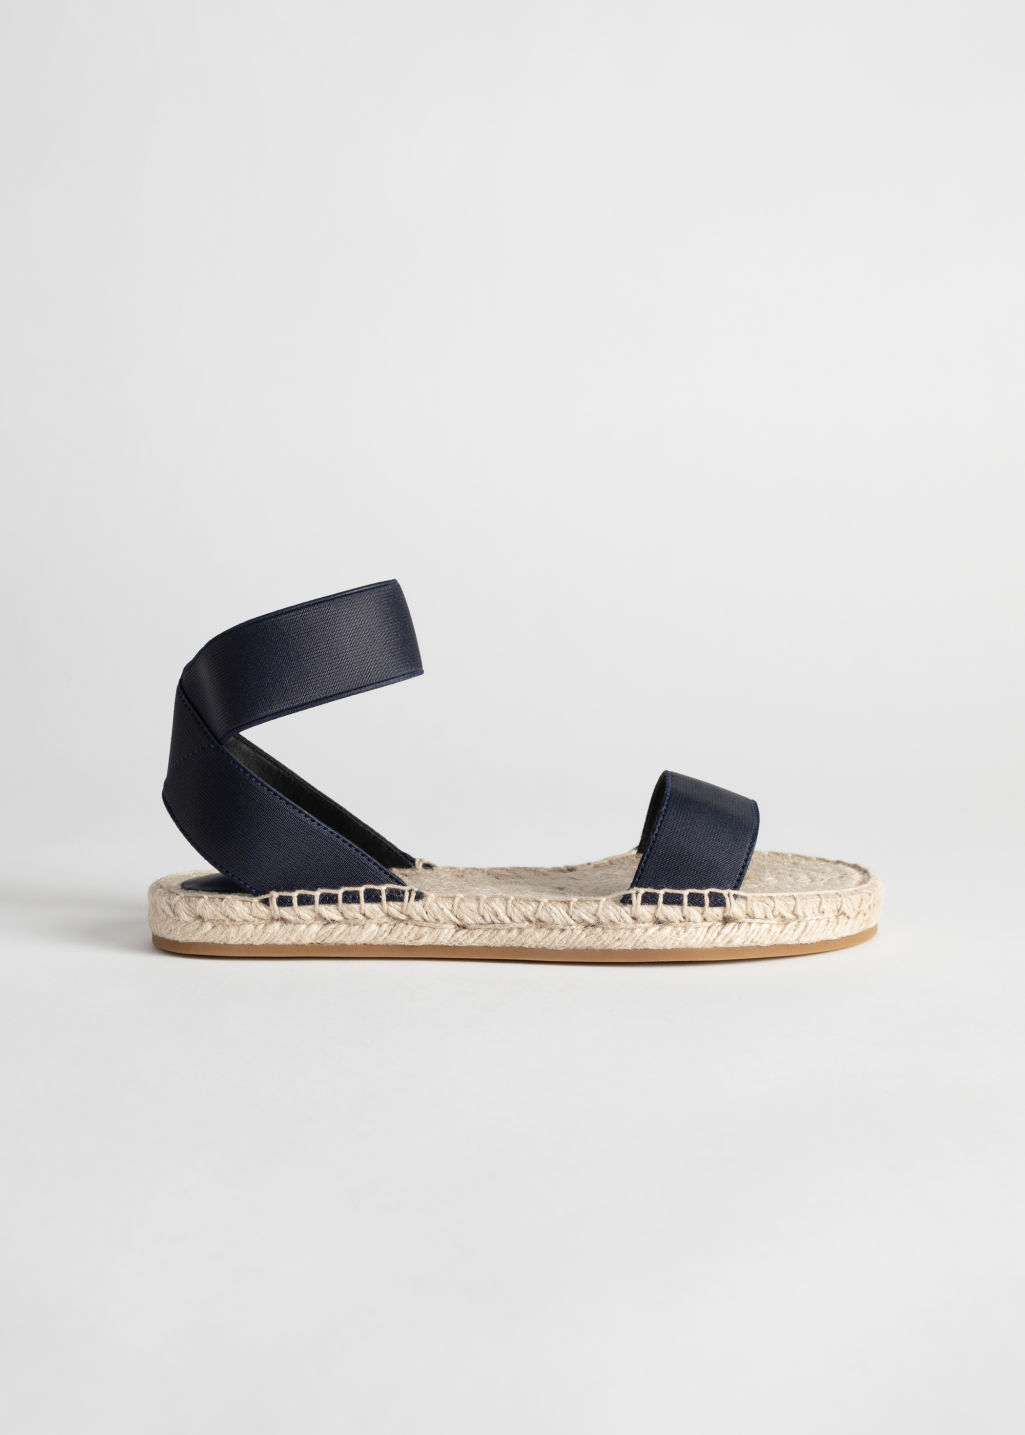 6d18a29f2 Two-Strap Sandal - Navy - Flat sandals -   Other Stories